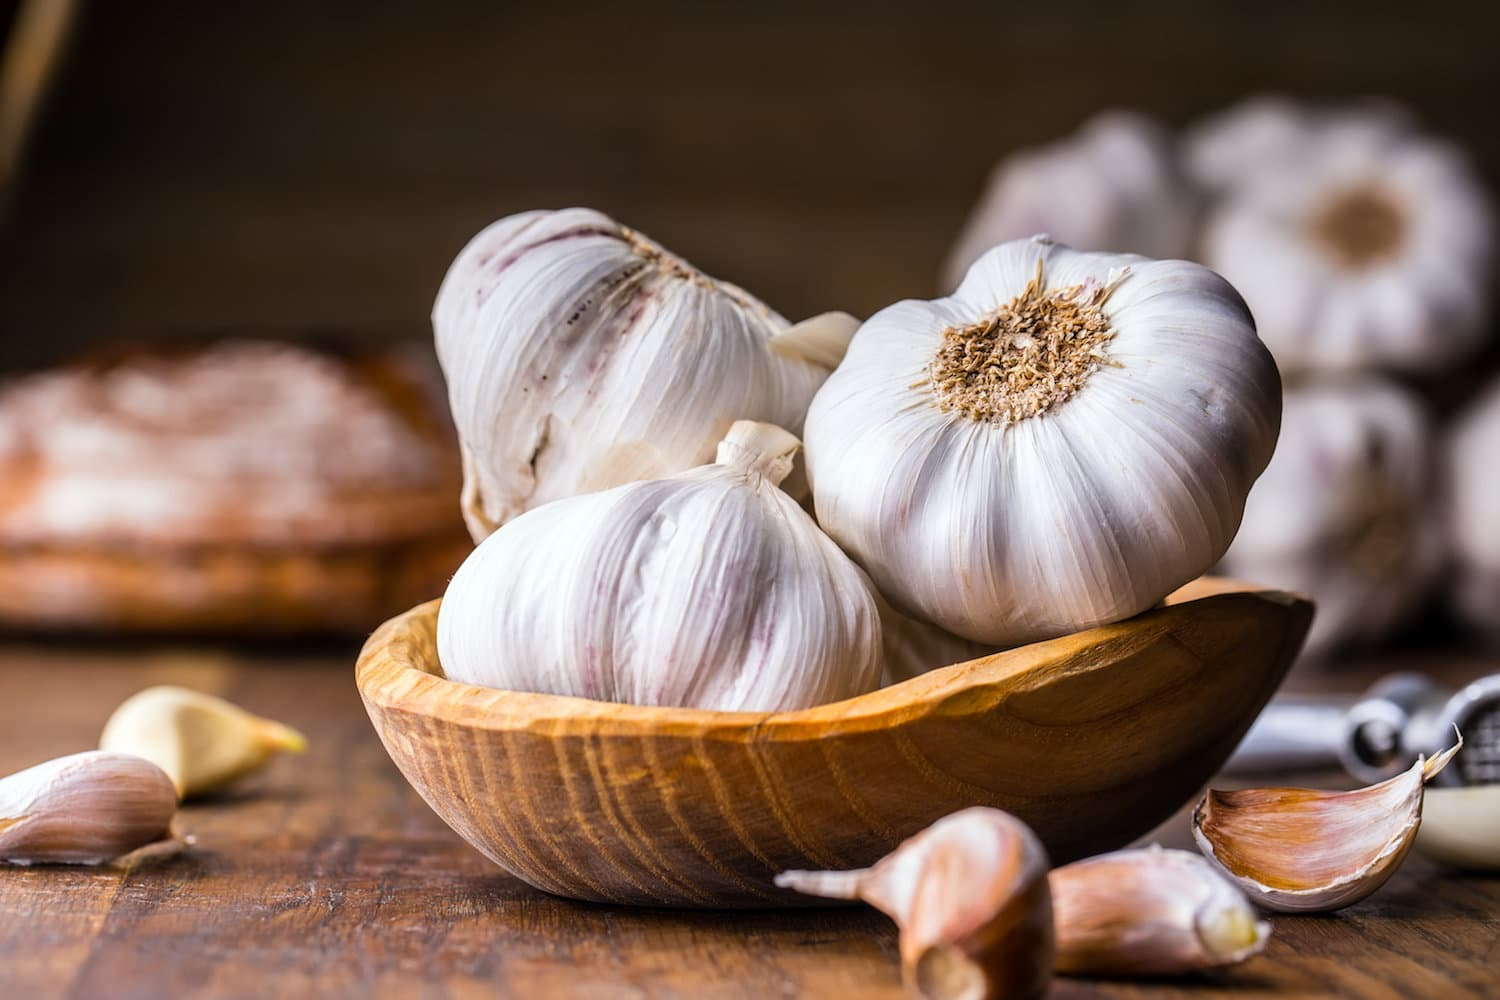 Treating Athlete's Foot with Garlic? Prepare to Be Burned, Literally!